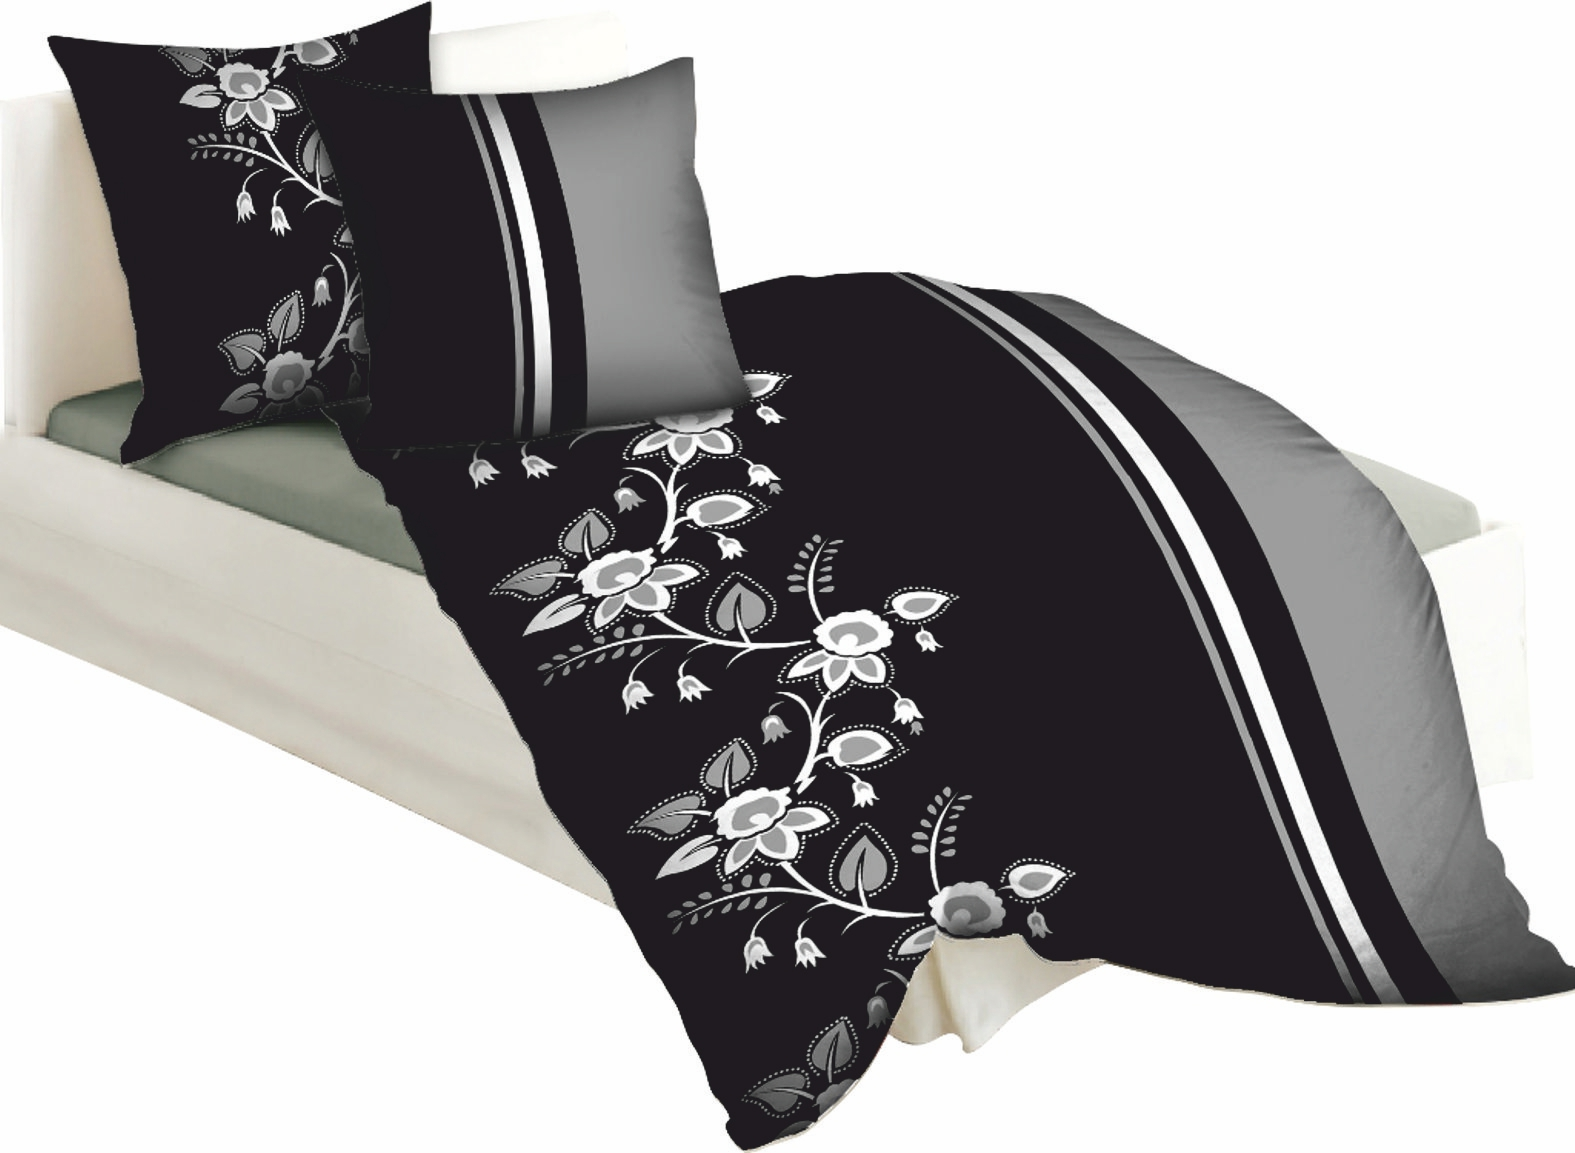 moderne biber bettw sche hnl baumwoll satin bettw sche charley gr n. Black Bedroom Furniture Sets. Home Design Ideas